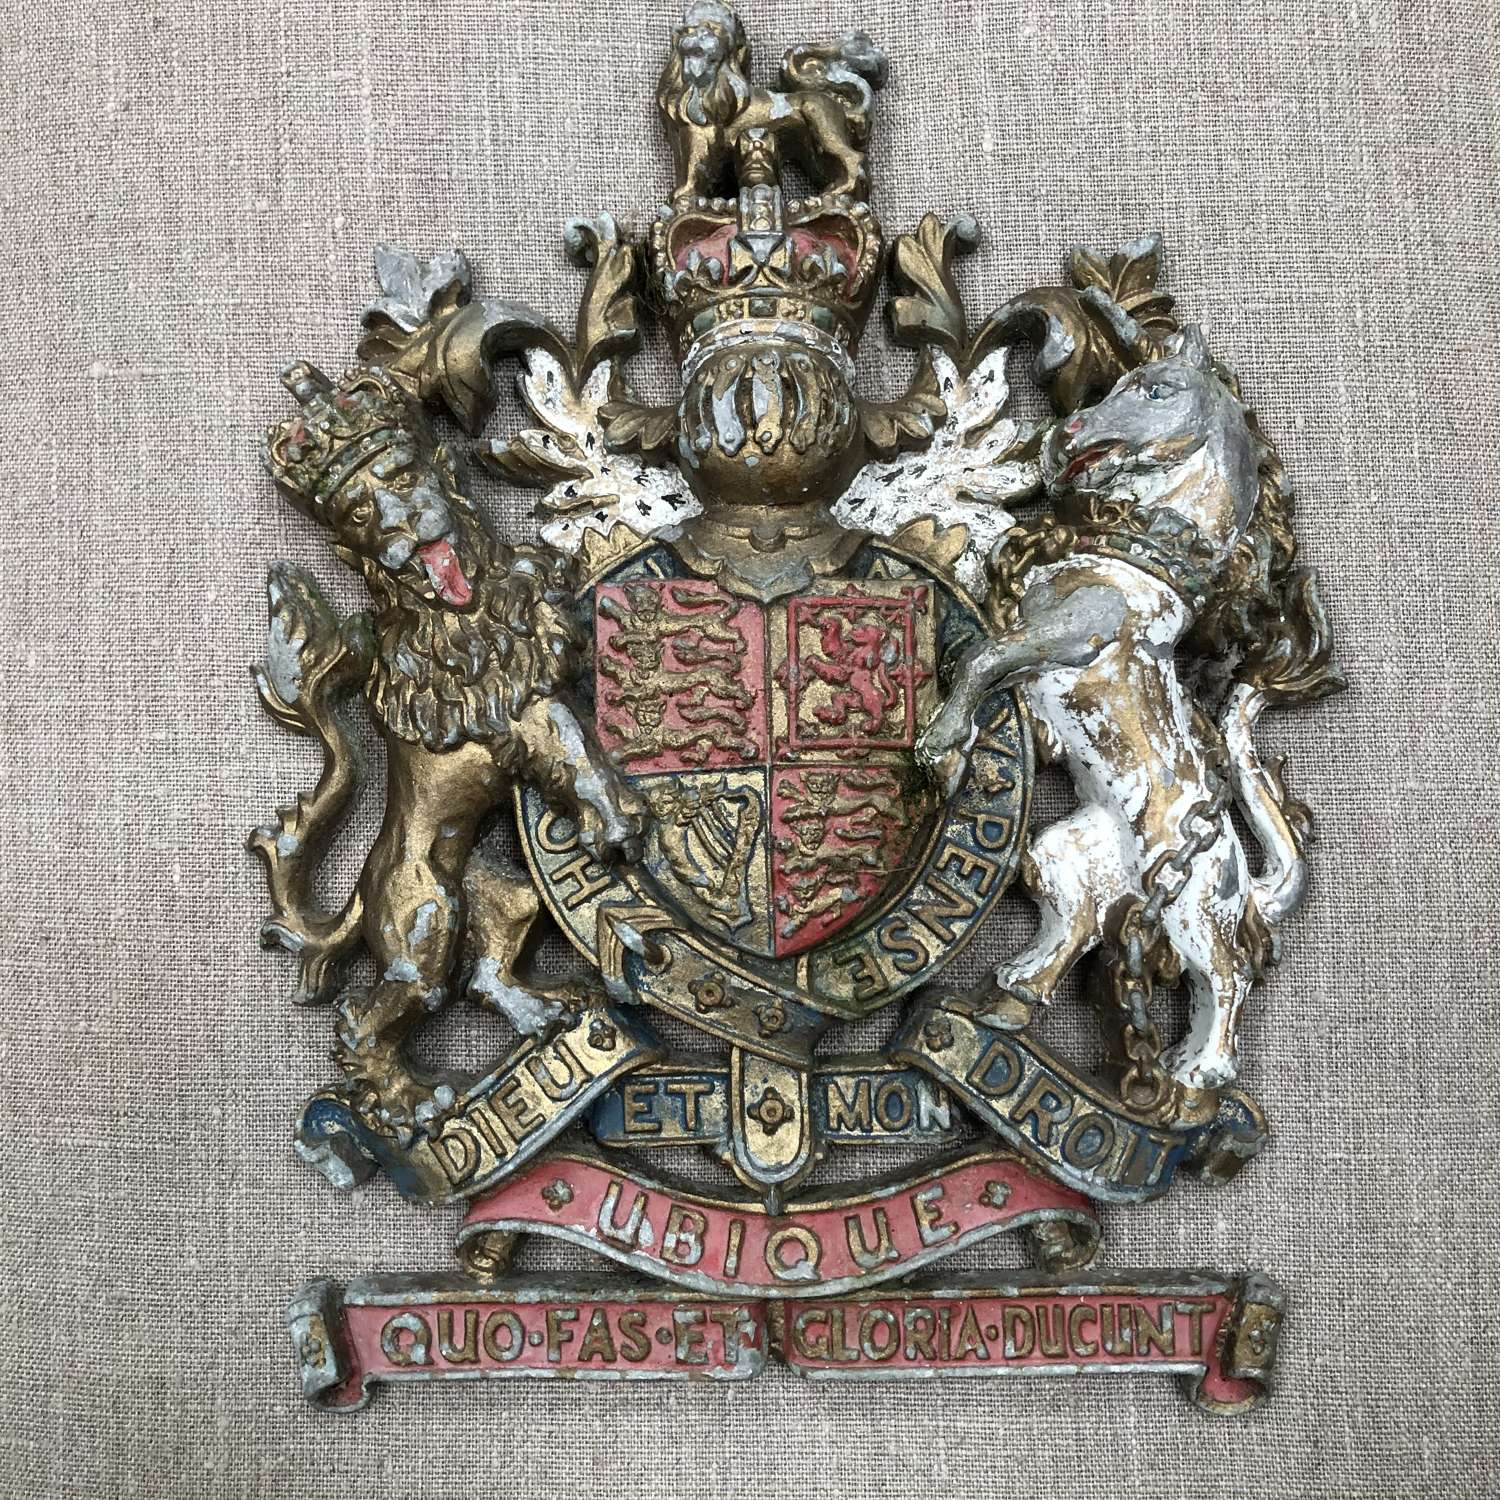 A cast metal coat of arms